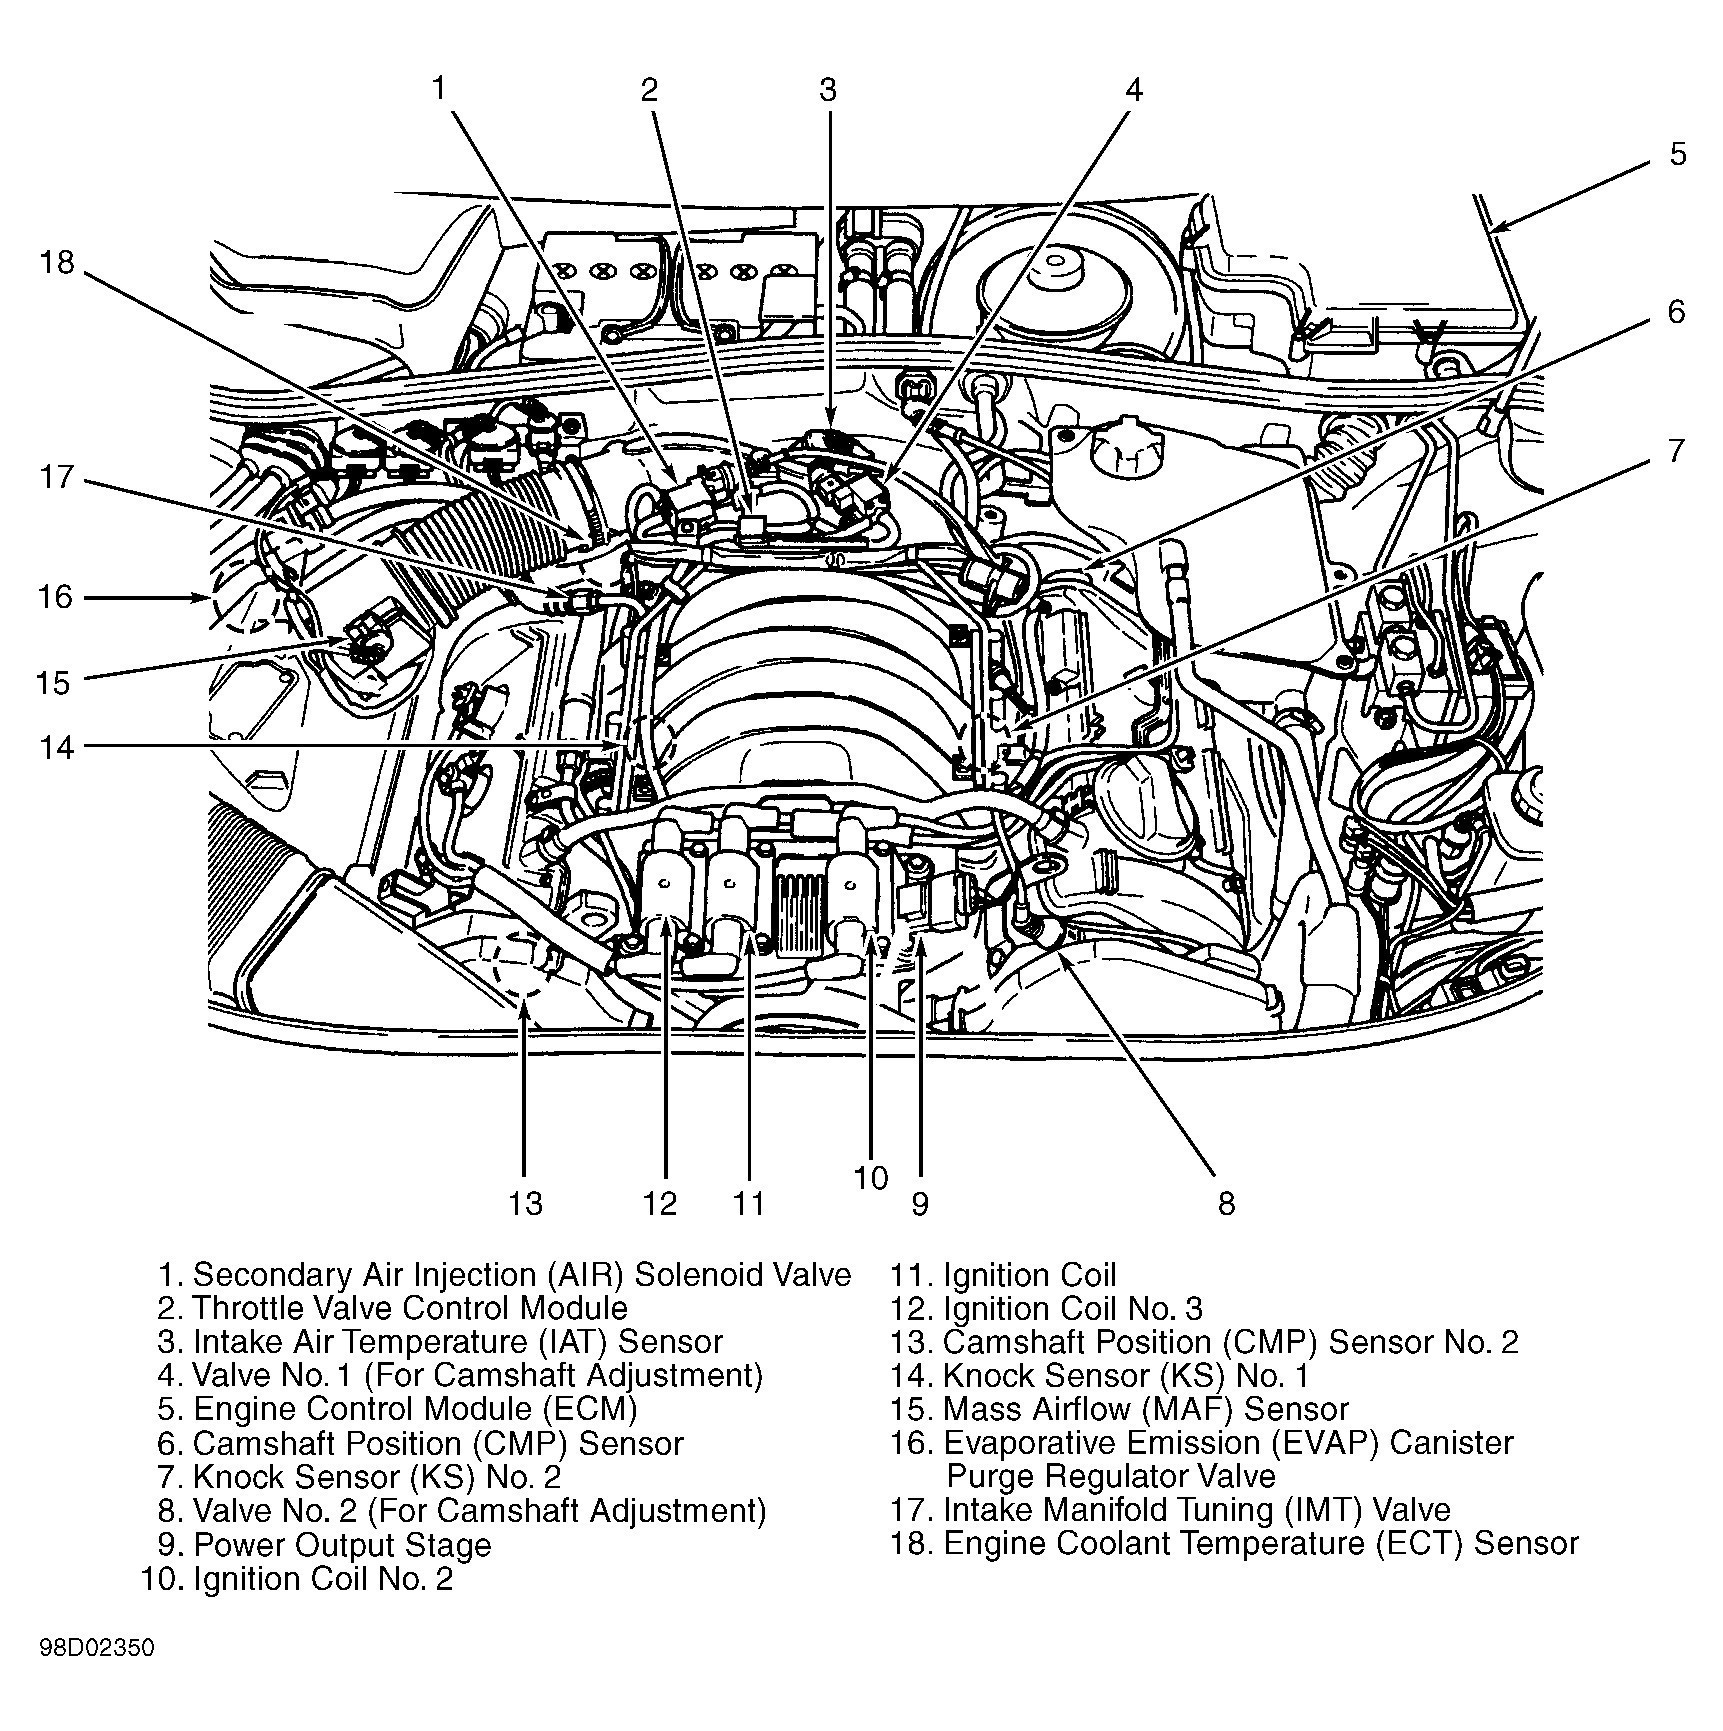 2001 Dodge Ram Engine Diagram 1999 Dodge Durango 5 9 Engine Diagram Wiring Diagram Datasource Of 2001 Dodge Ram Engine Diagram 96 Ram 1500 Engine Diagram Wiring Diagram Paper